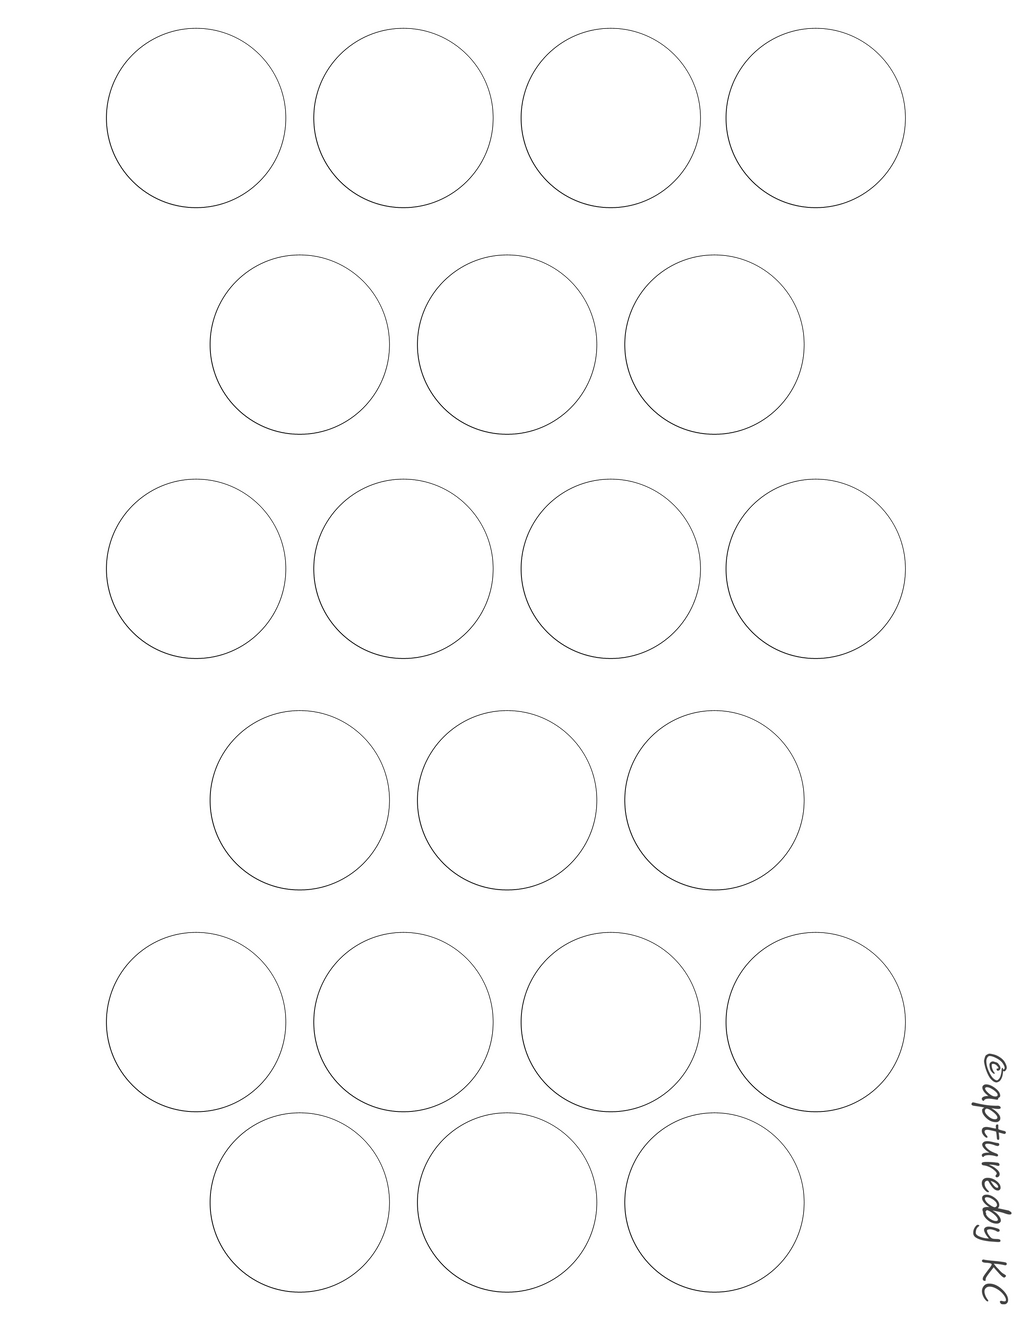 Free bottle cap template sheet 85x11 by capturedbykc on deviantart free bottle cap template sheet 85x11 by capturedbykc pronofoot35fo Image collections